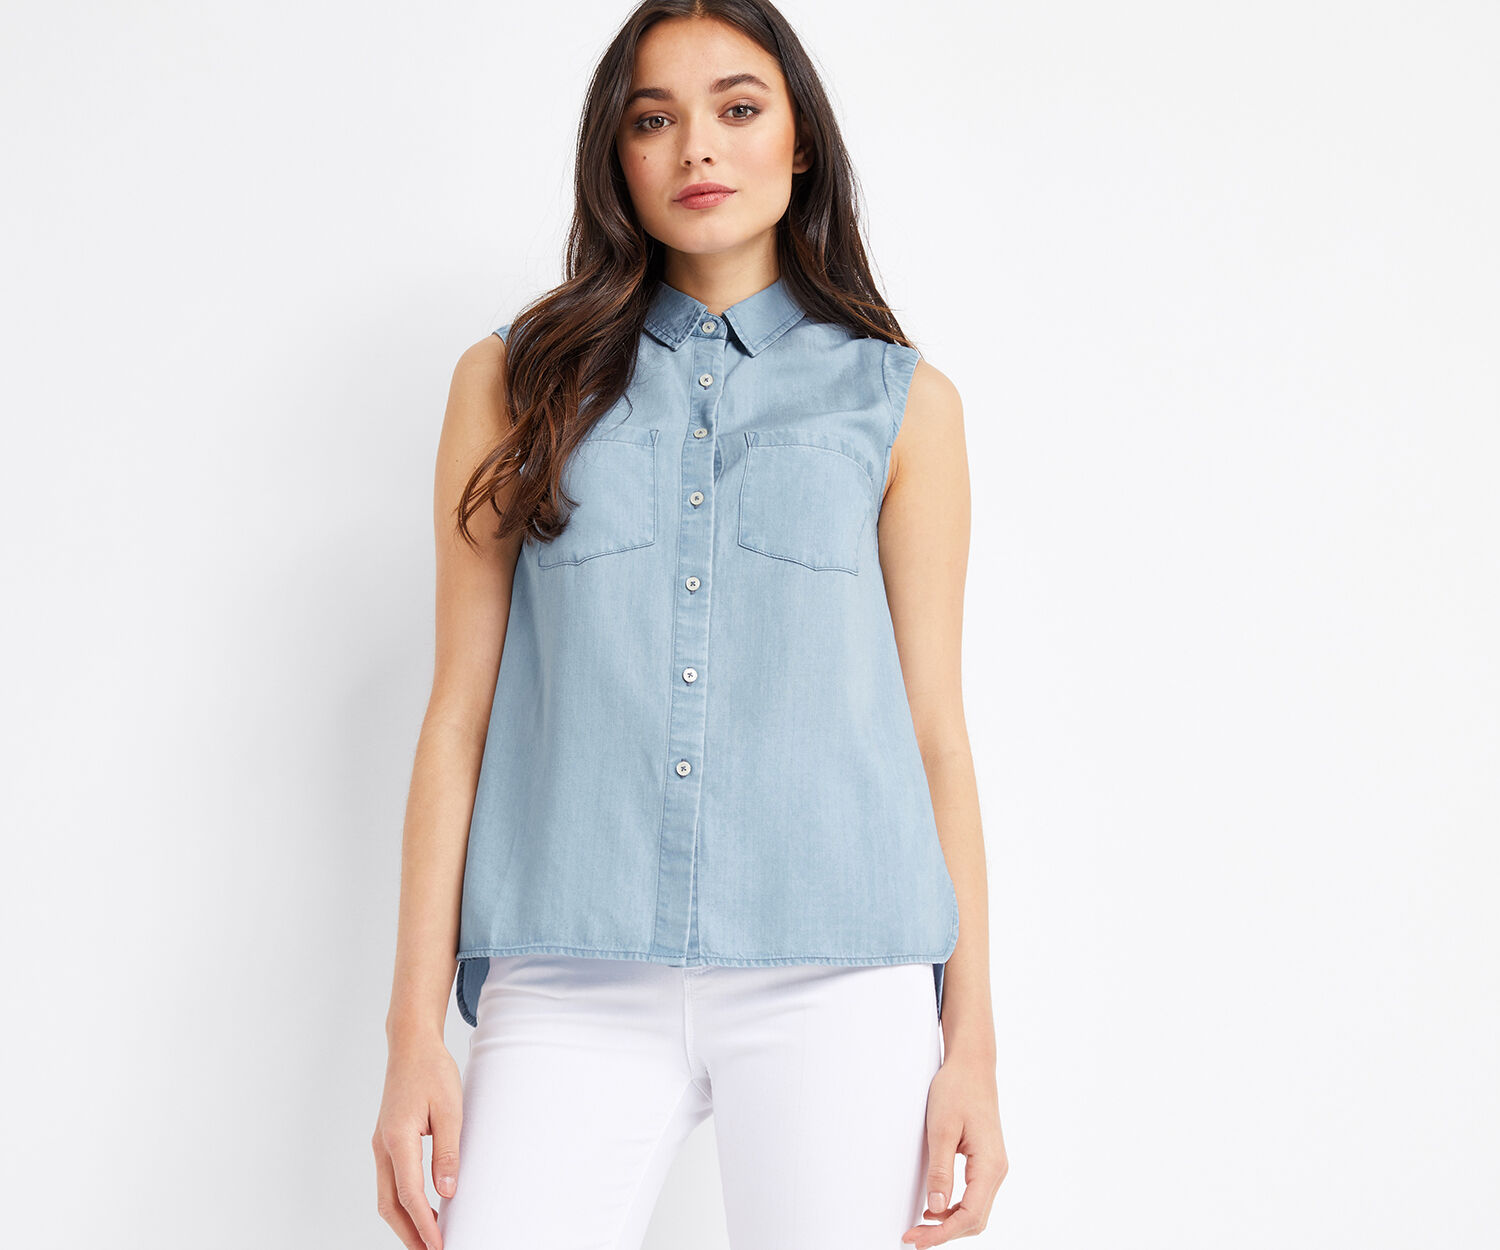 Oasis, ALEX SLEEVELESS SHIRT Light Wash 1